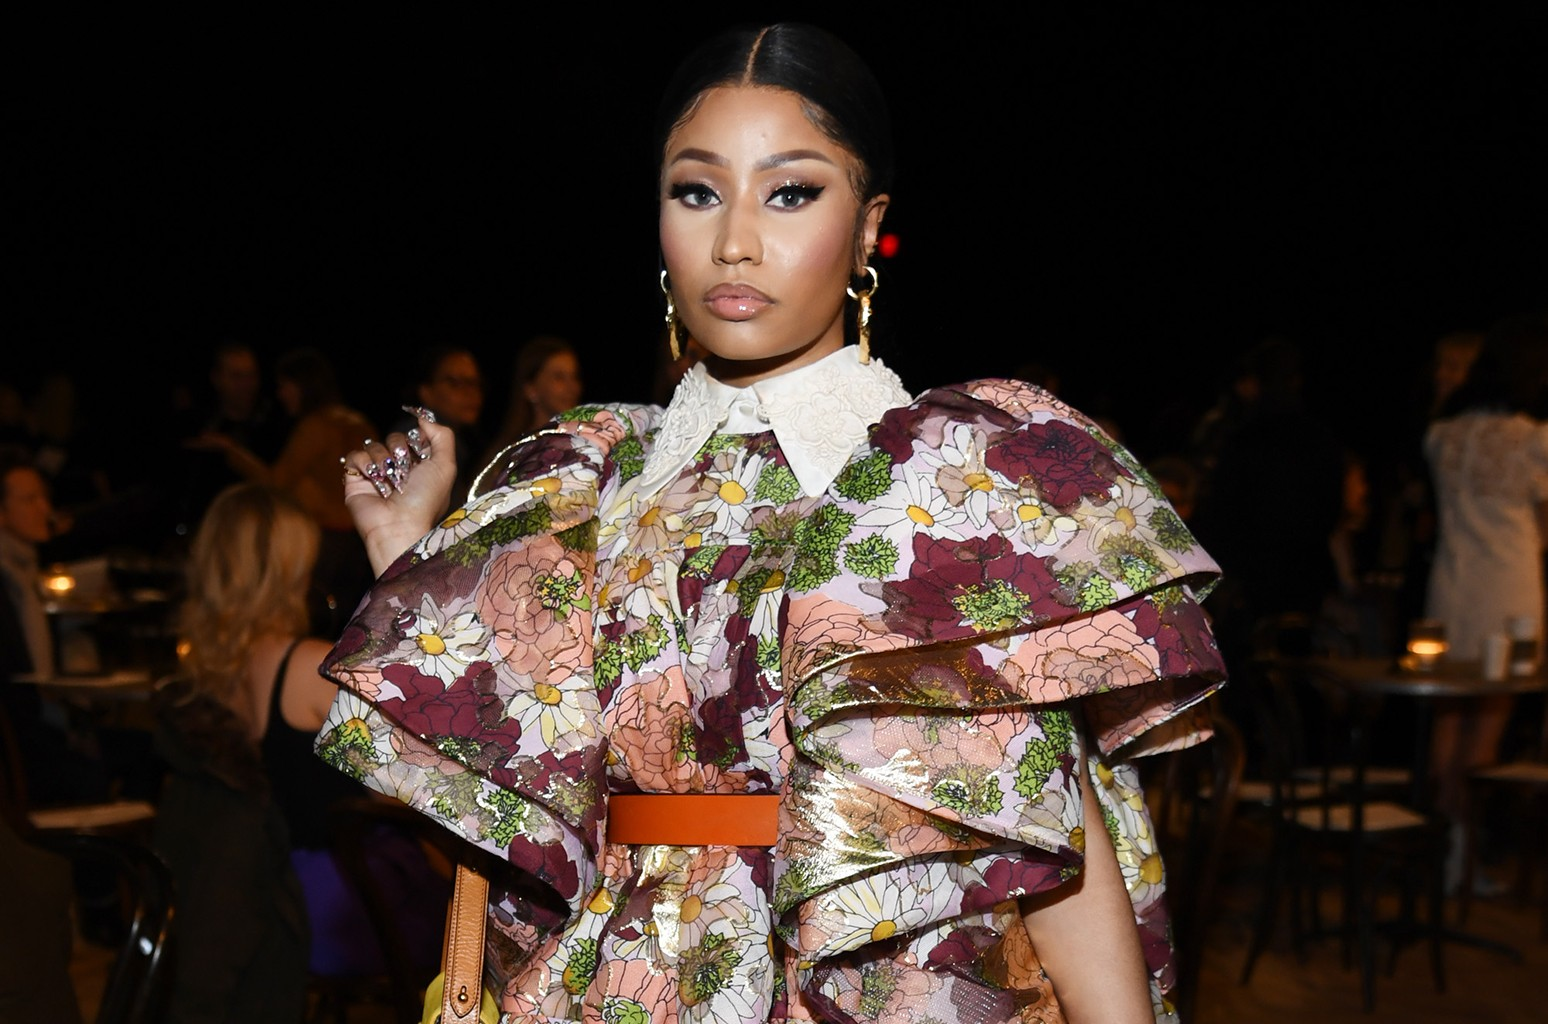 Man Arrested in Hit-and-Run Death of Nicki Minaj's Dad